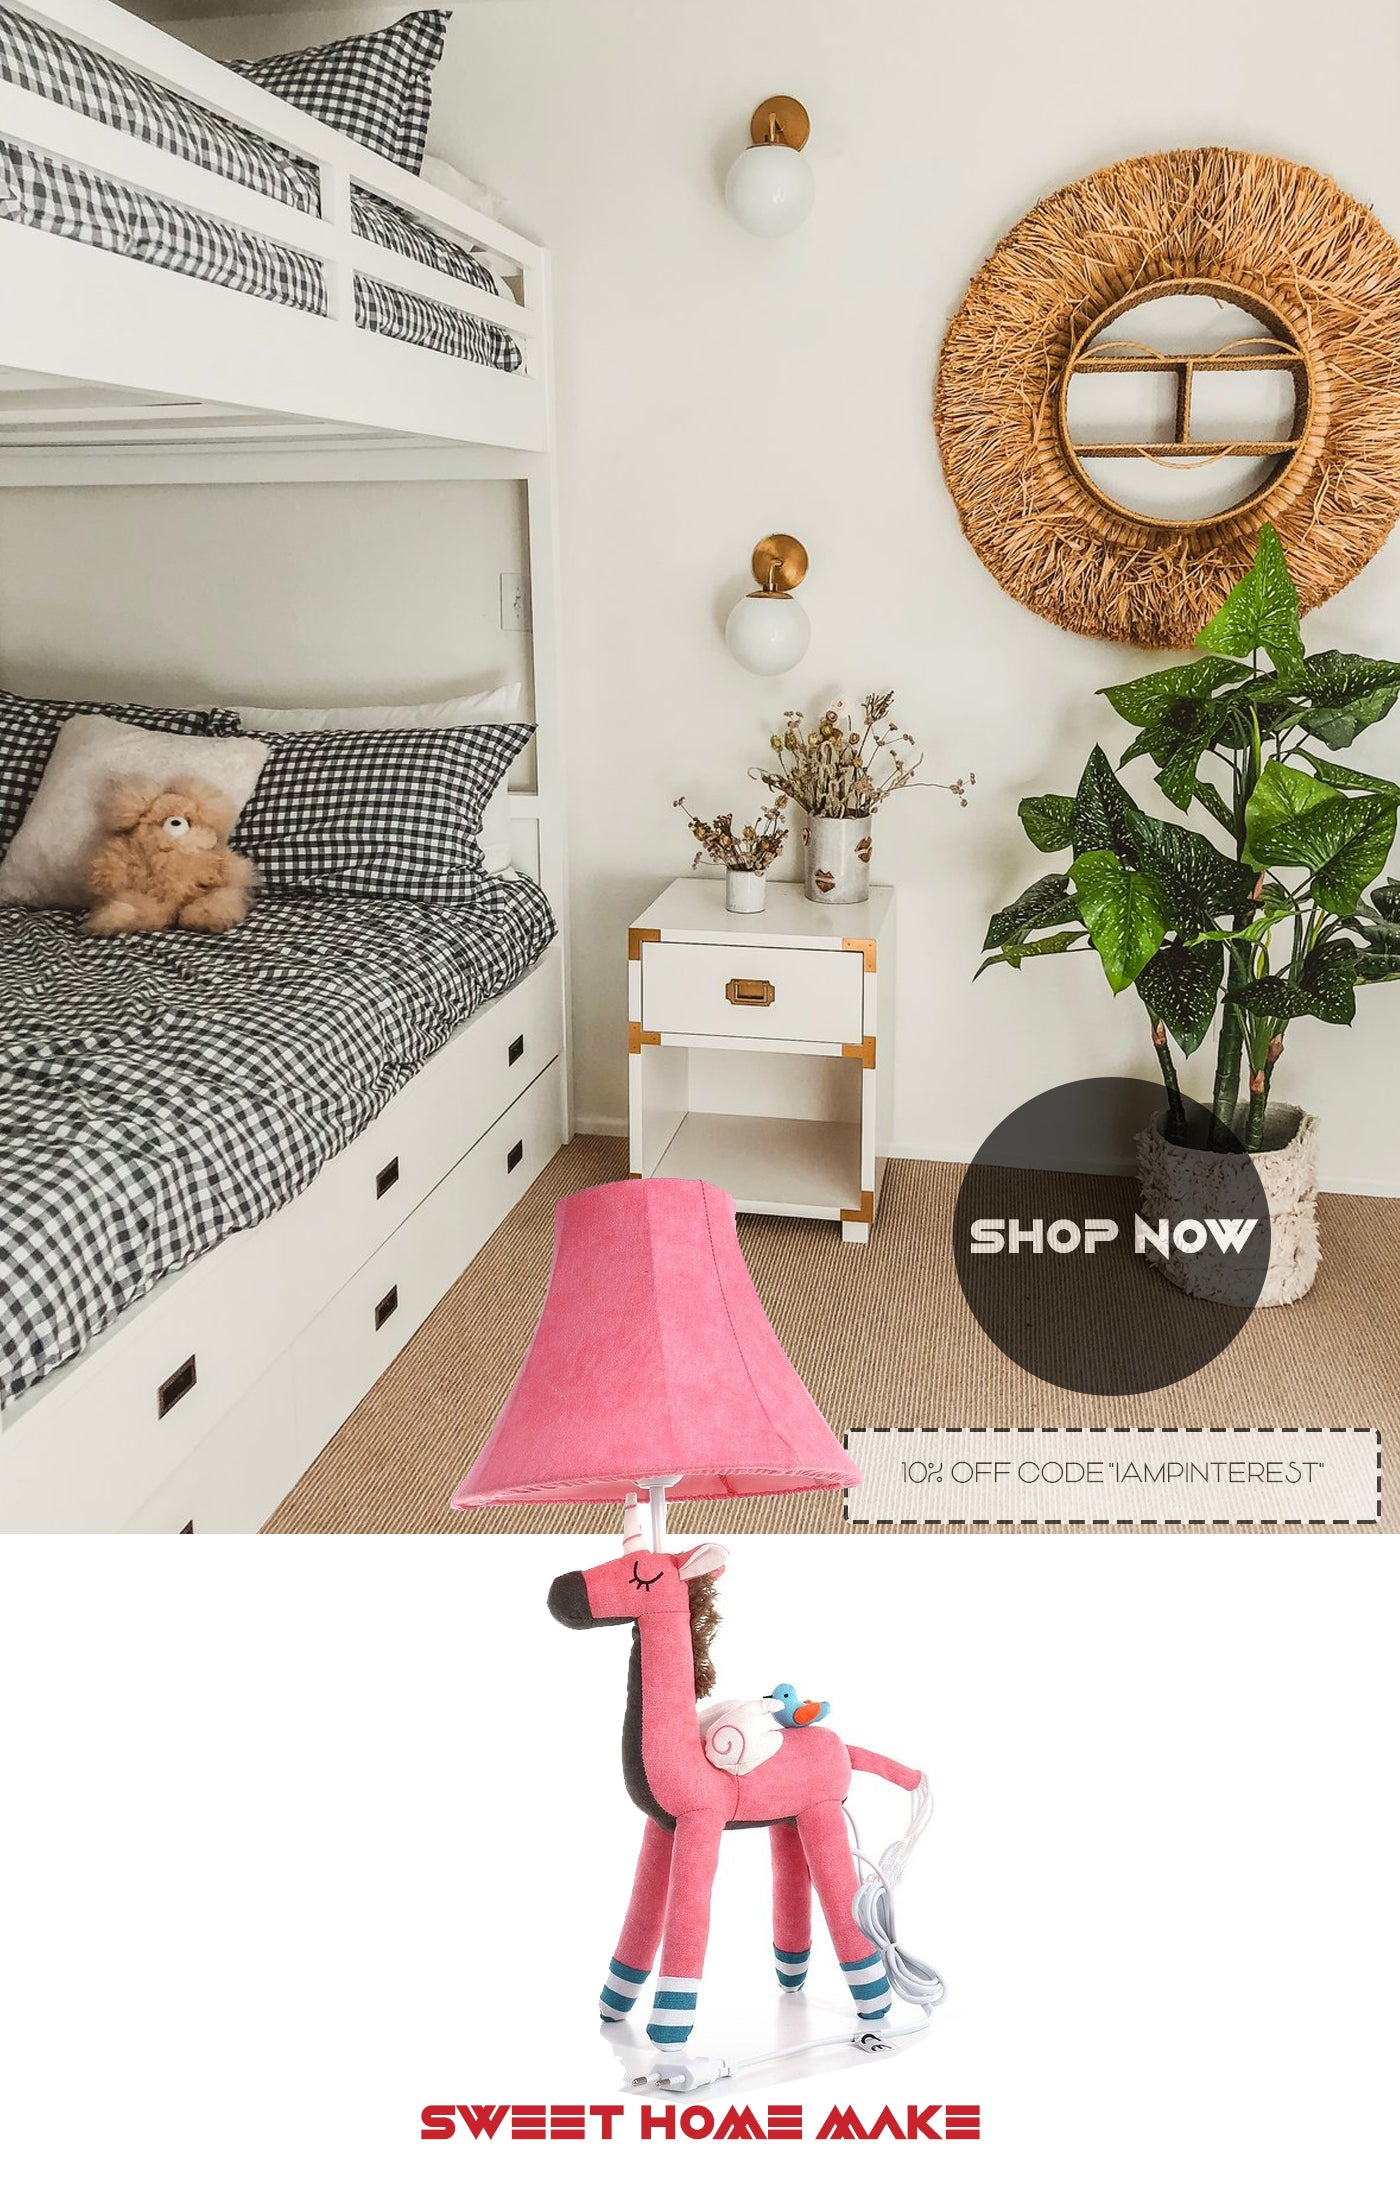 Unicorn Toys with Pink Stuffed Table Lamp For Bedroom Decorations